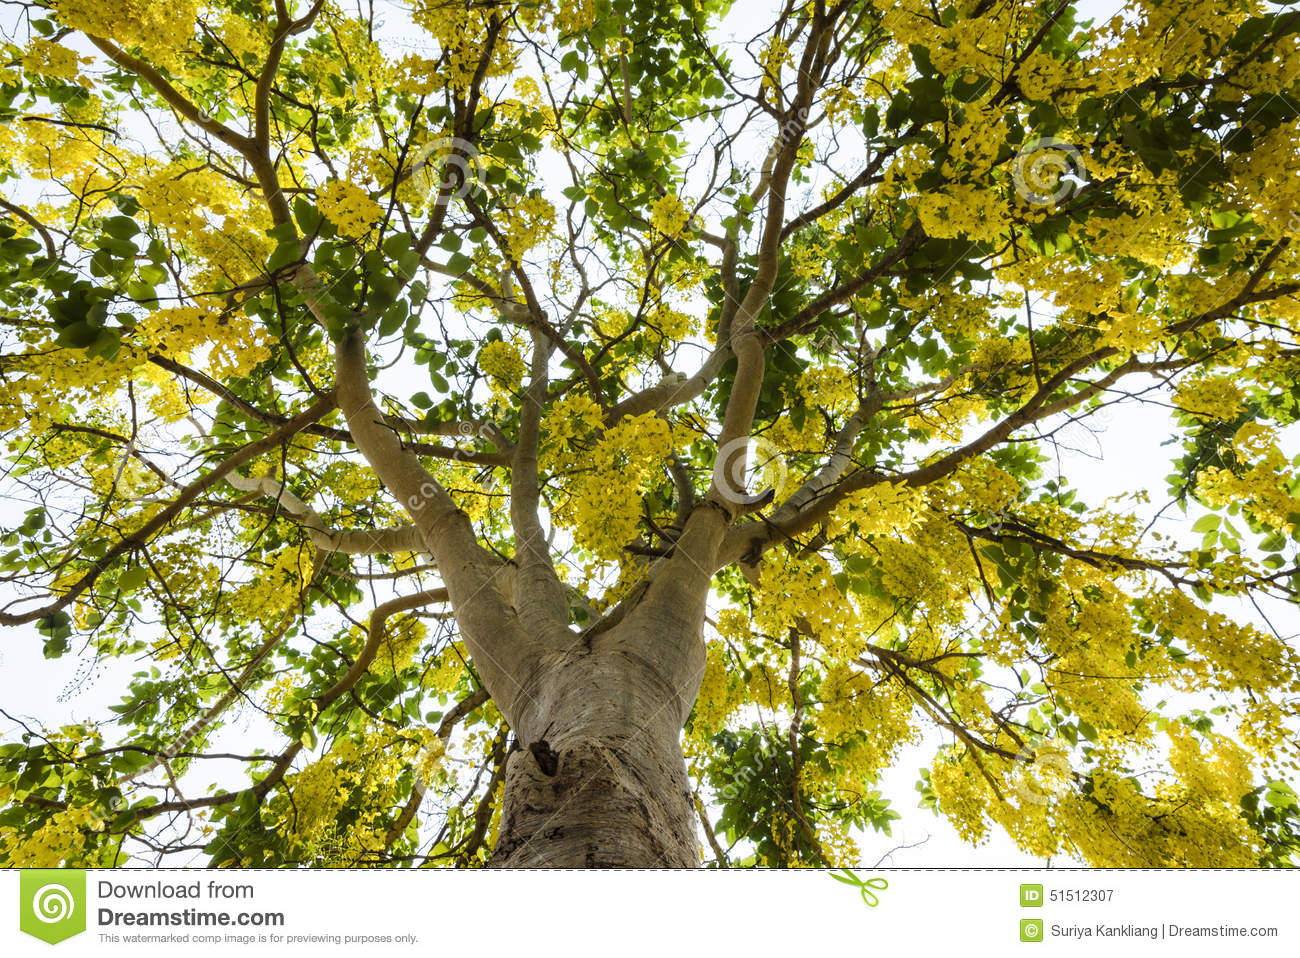 An image of Golden shower tree which full with flowers